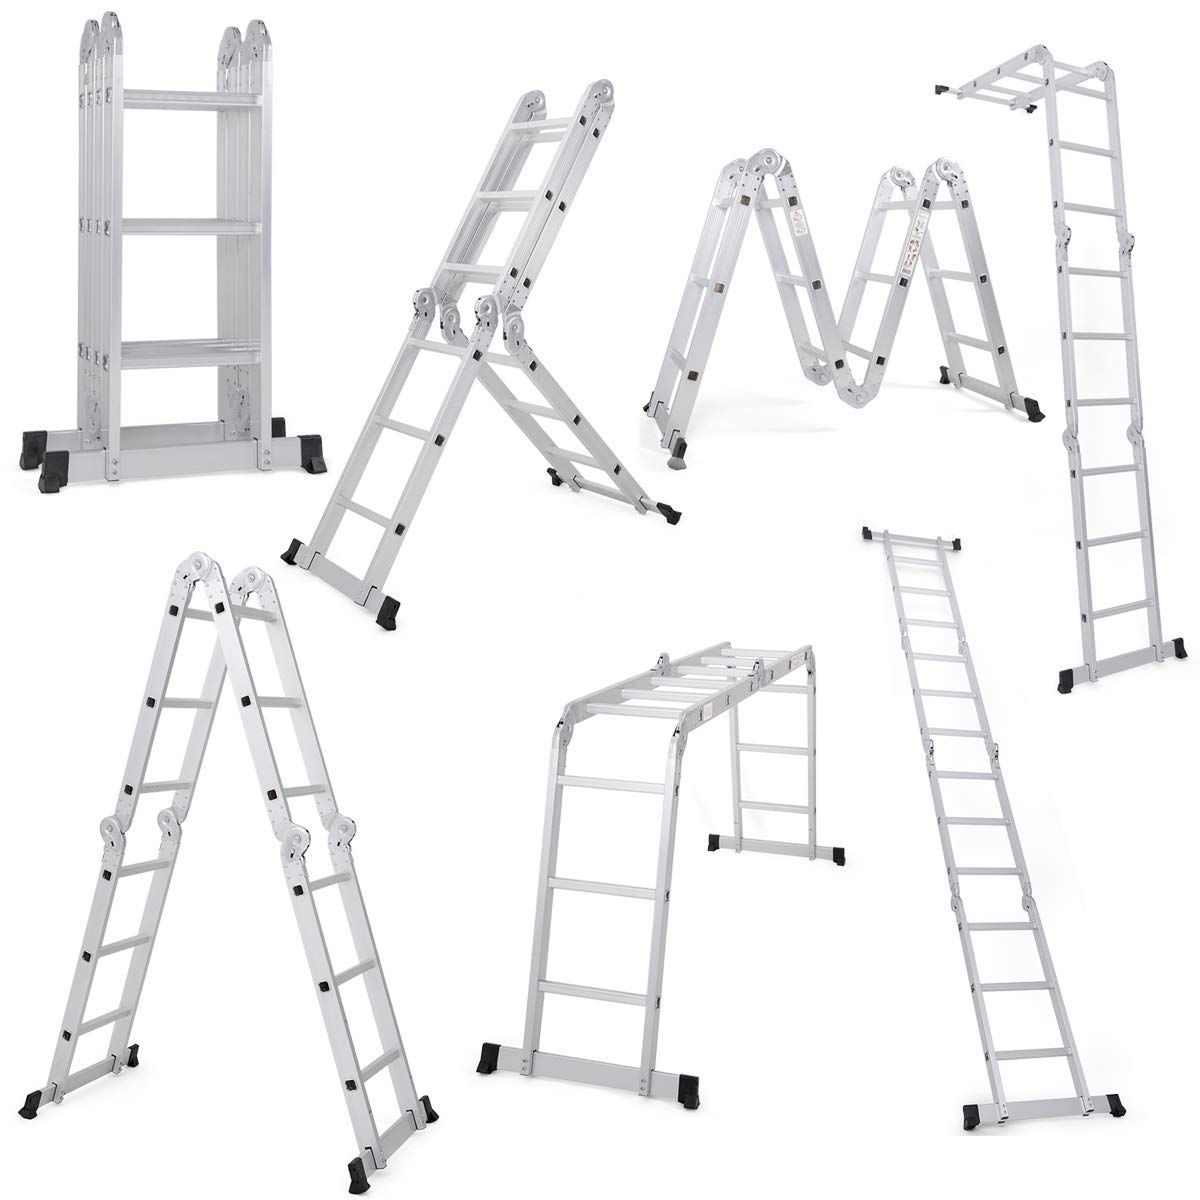 This Is A Multi Use Ladder For Home And Business Use Which Can Be Transformed Into 7 Different Formation In 2020 Scaffold Ladder Multi Purpose Ladder Aluminium Ladder